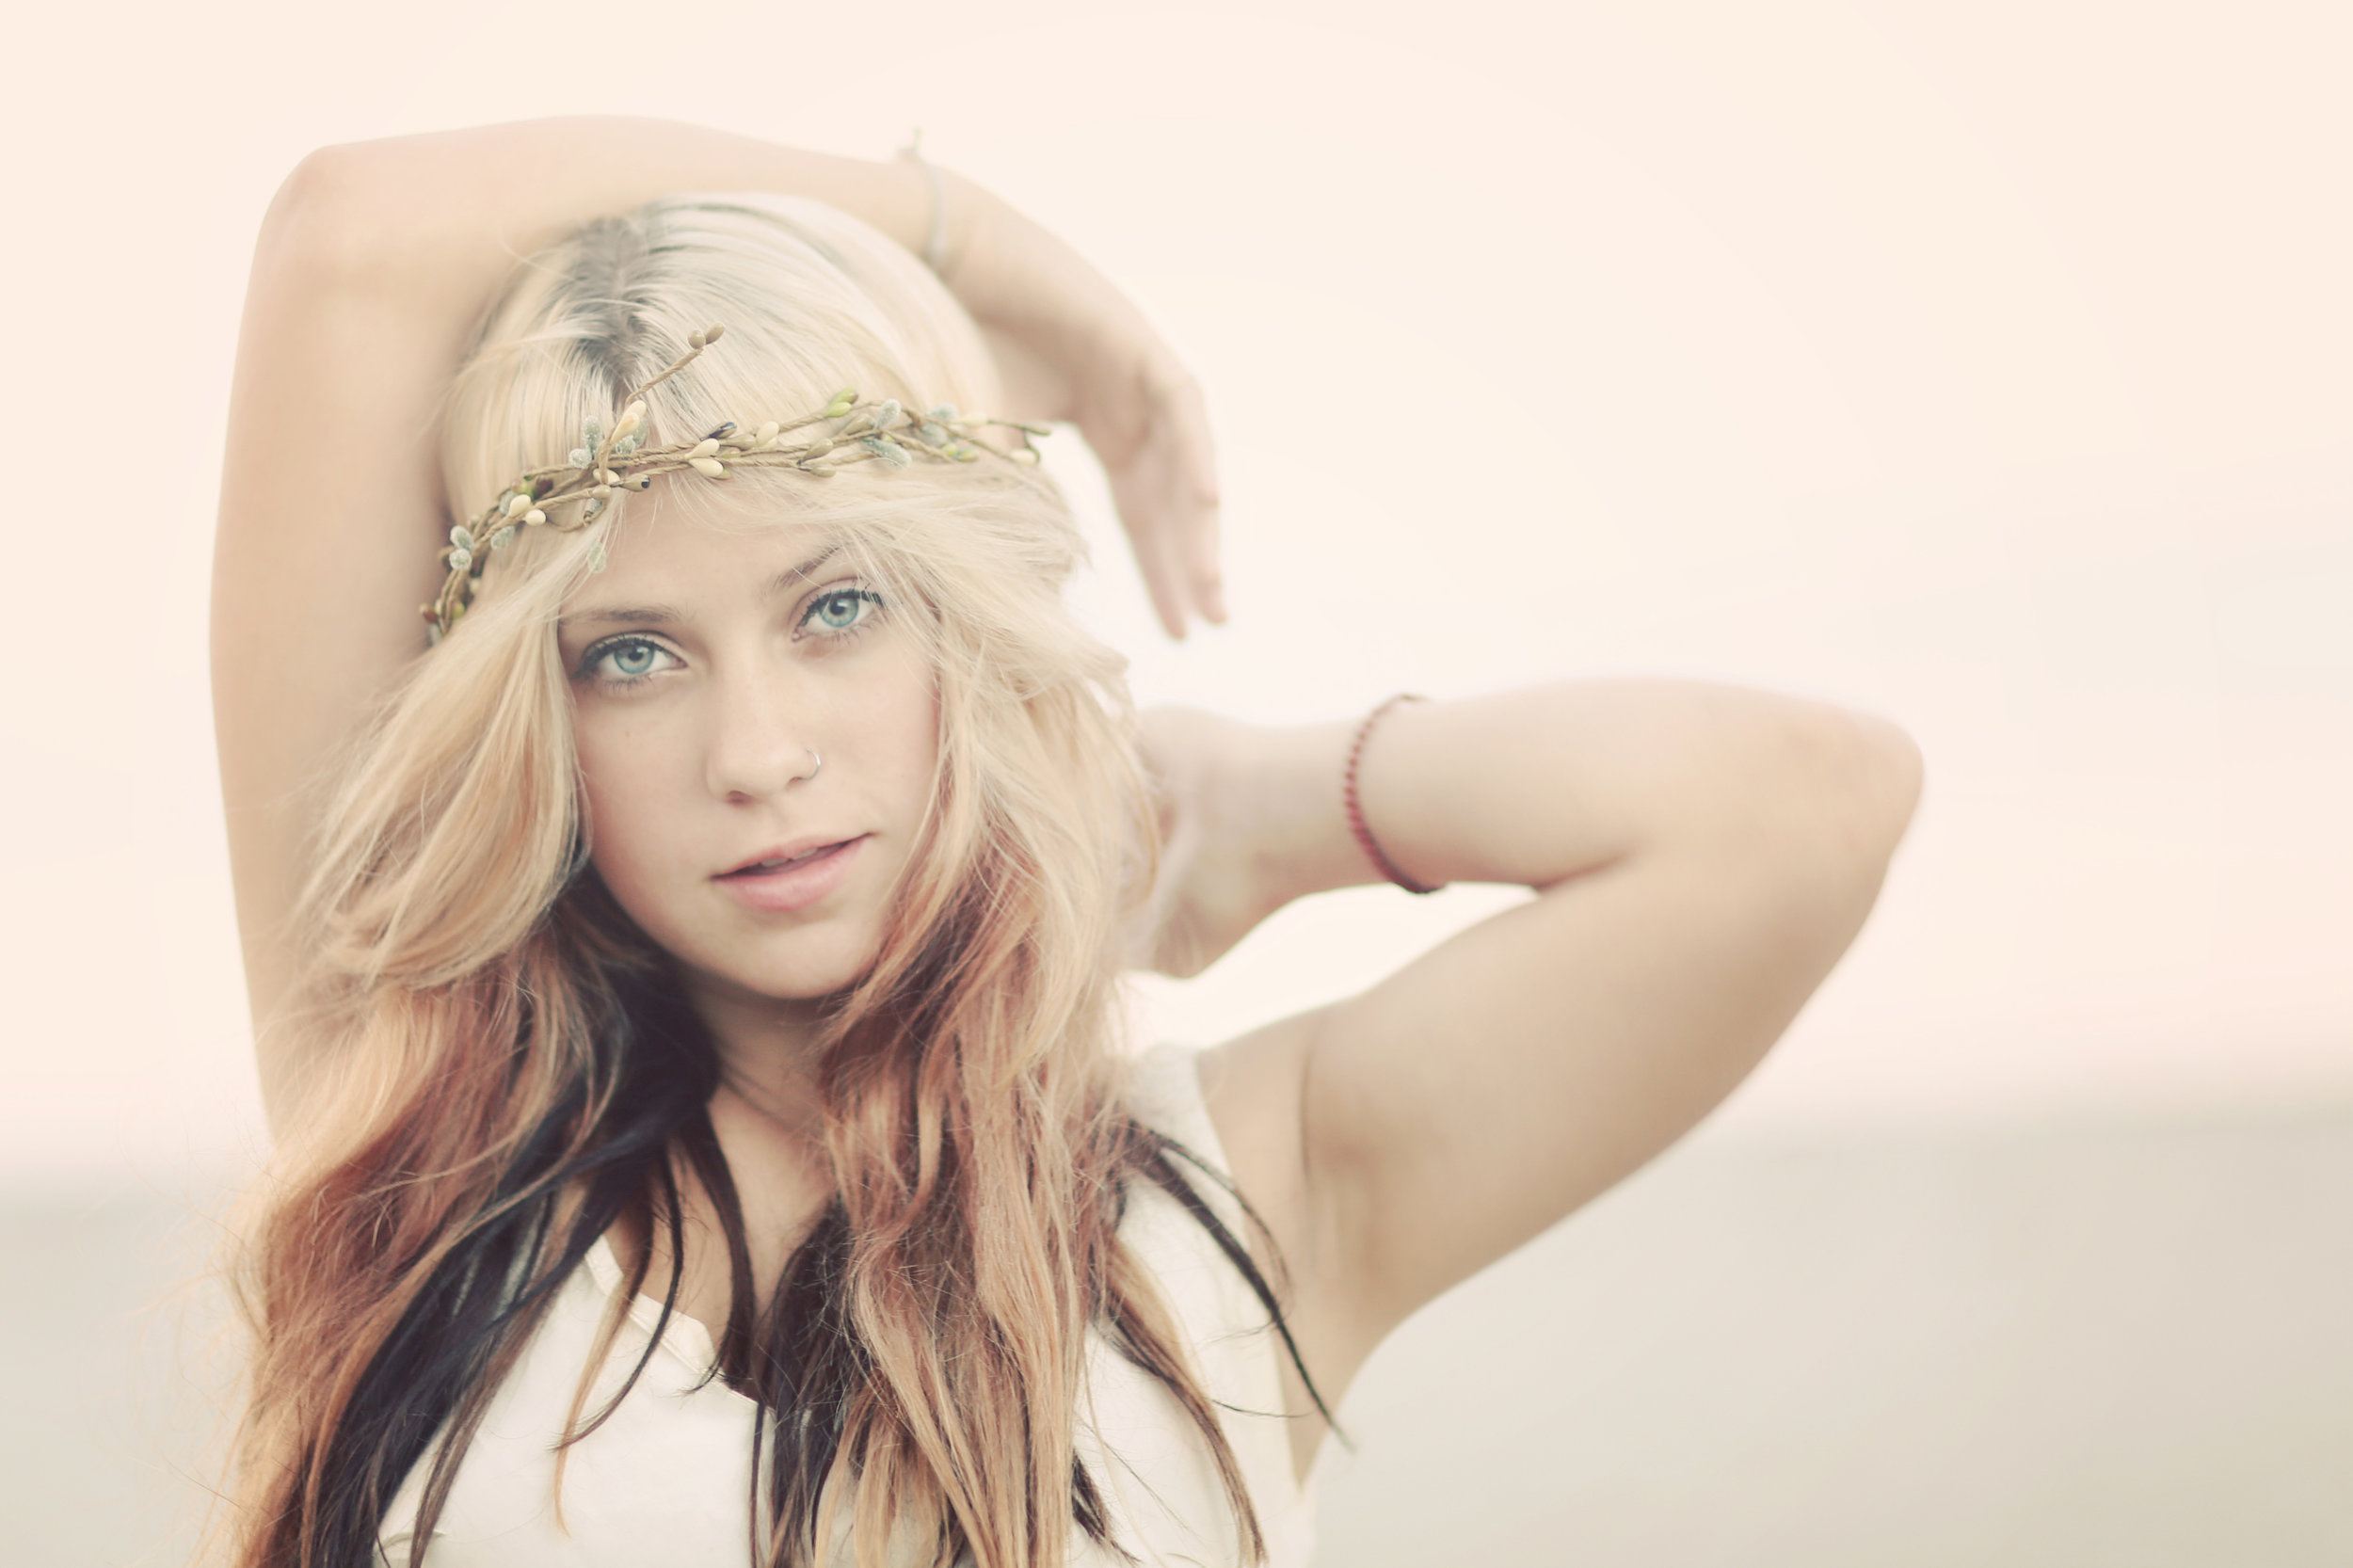 Young Orange County girl at the beach posing for a portrait. Long hair, blue eyes.